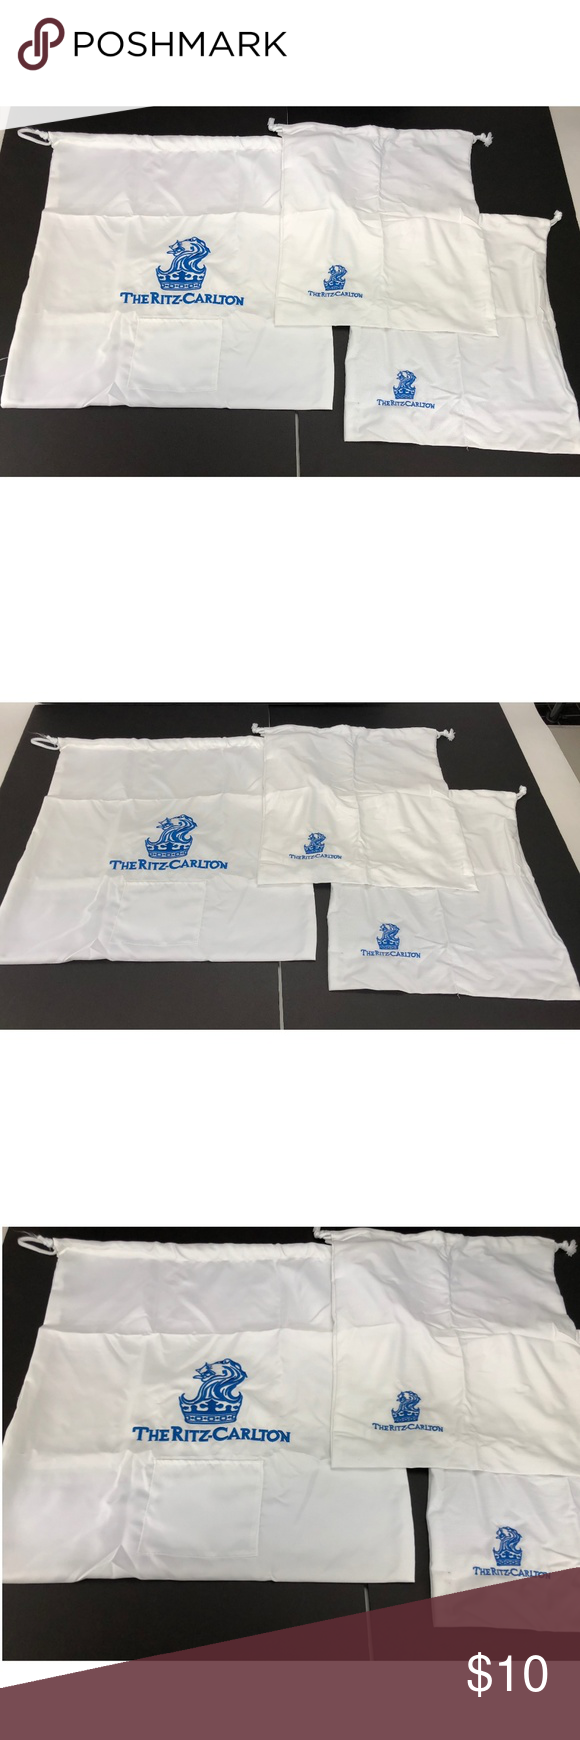 Ritz Carlton Hotel Drawstring Shoe And Laundry Bag With Images